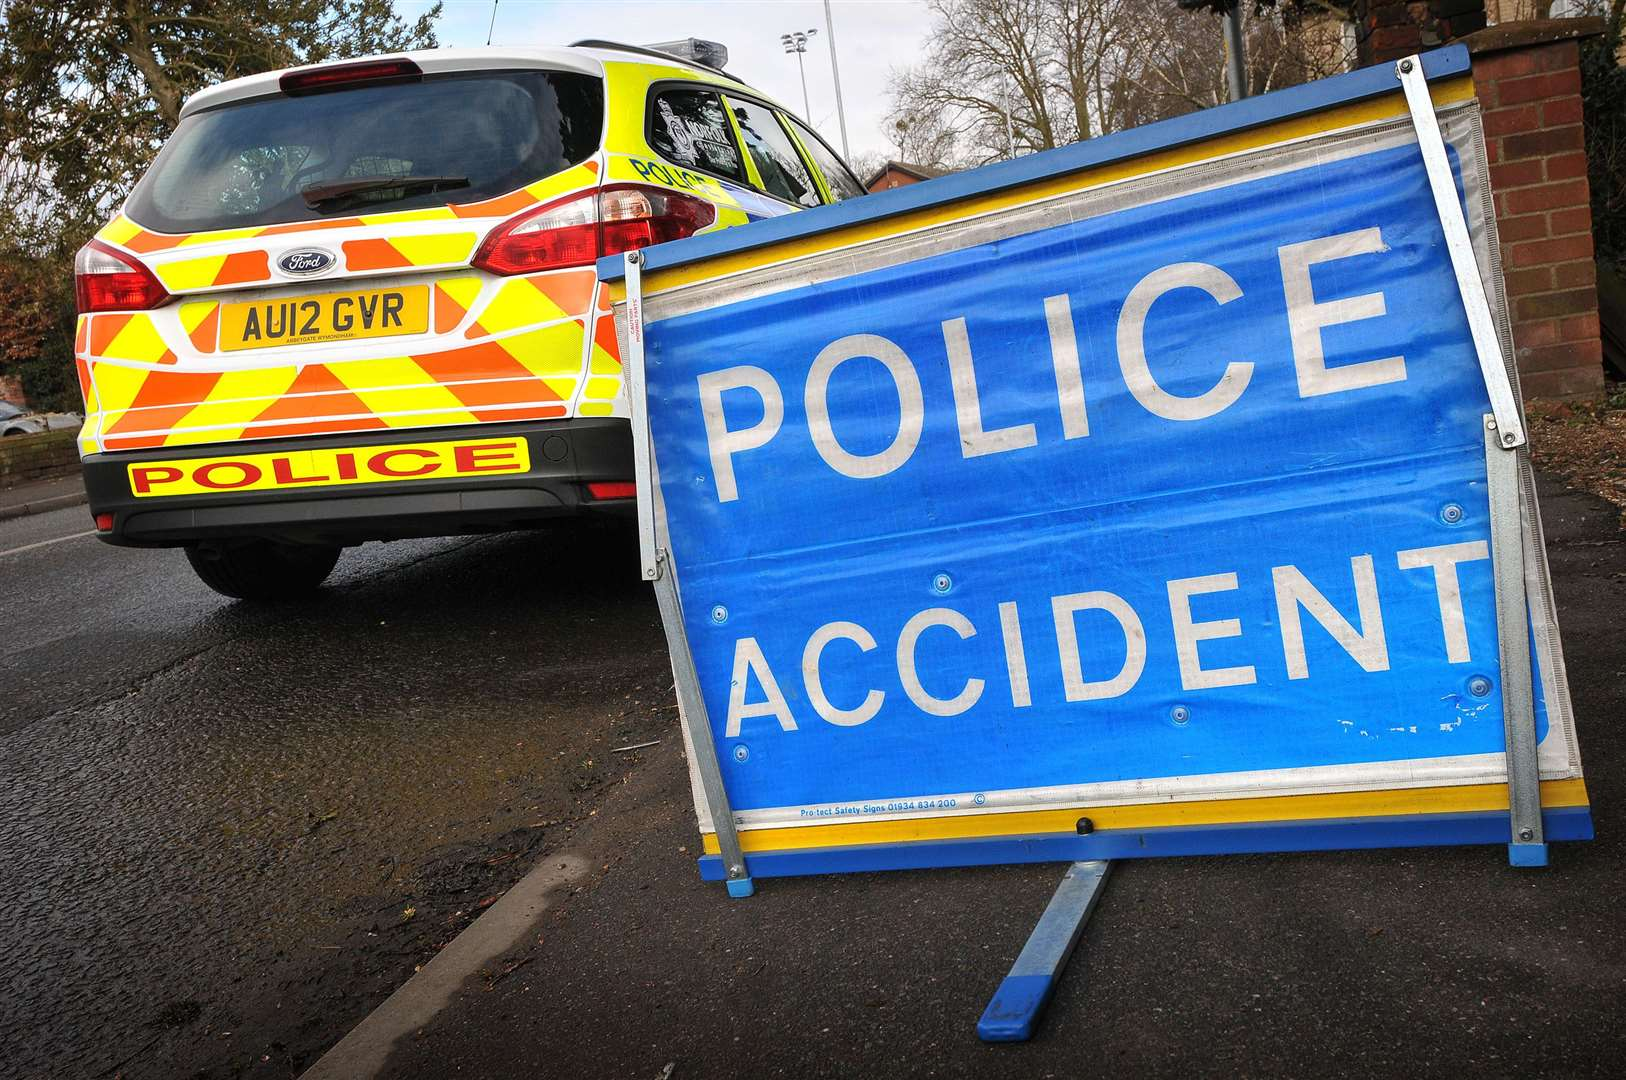 Police on the scene of an RTC - Norfolk Police accident sign. (46567014)